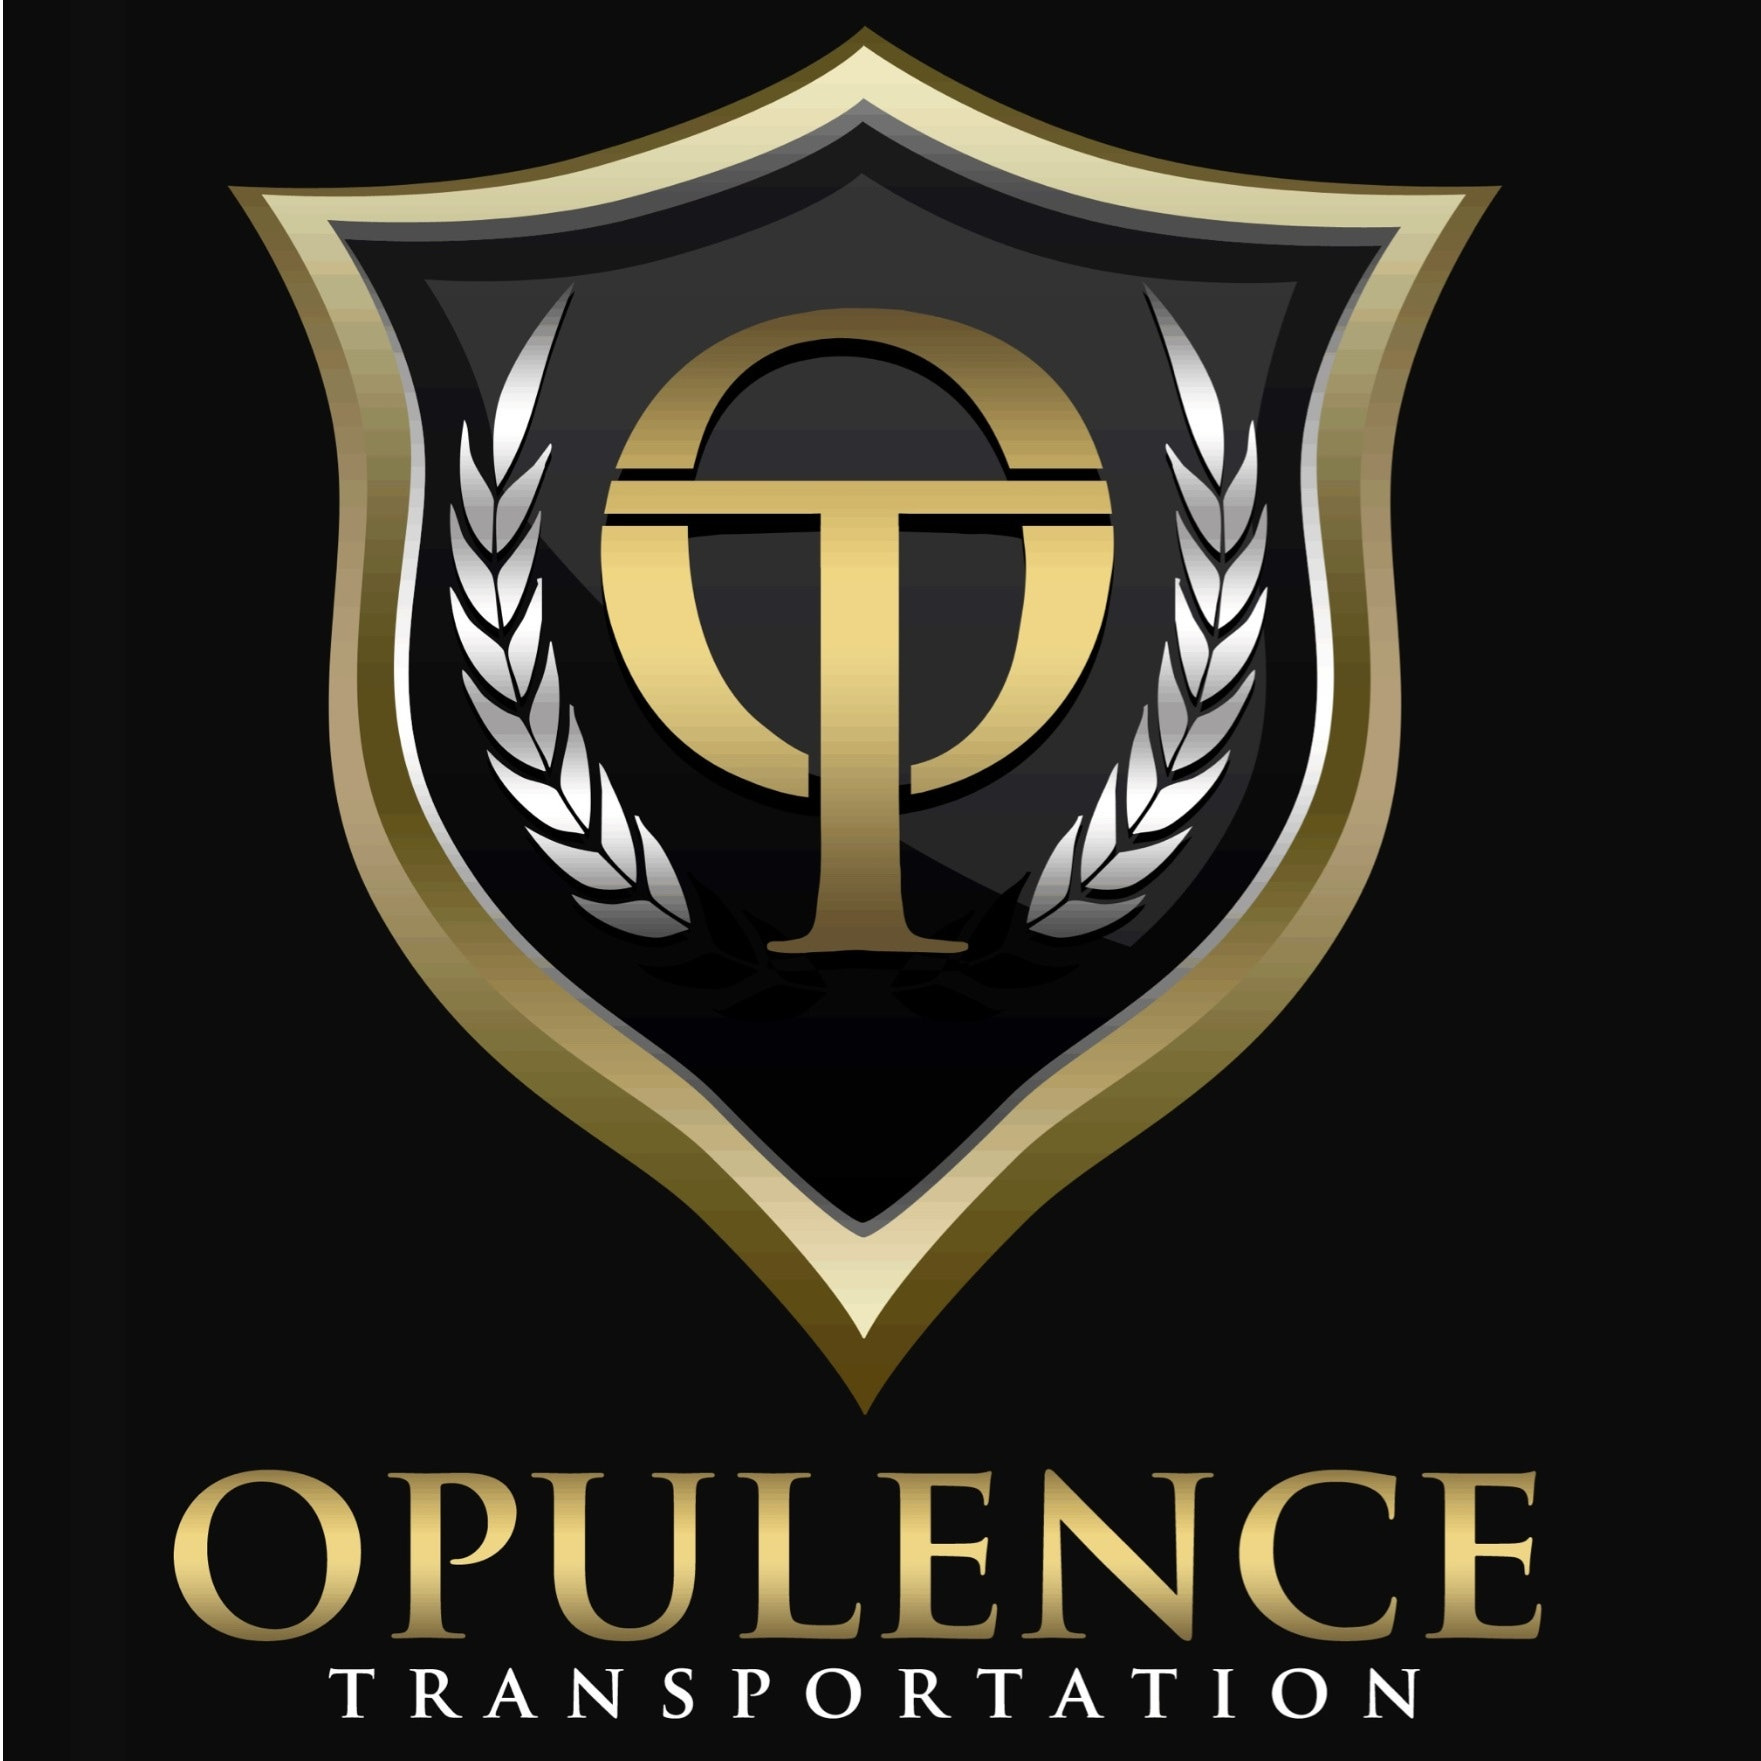 Opulence Transportation LLC